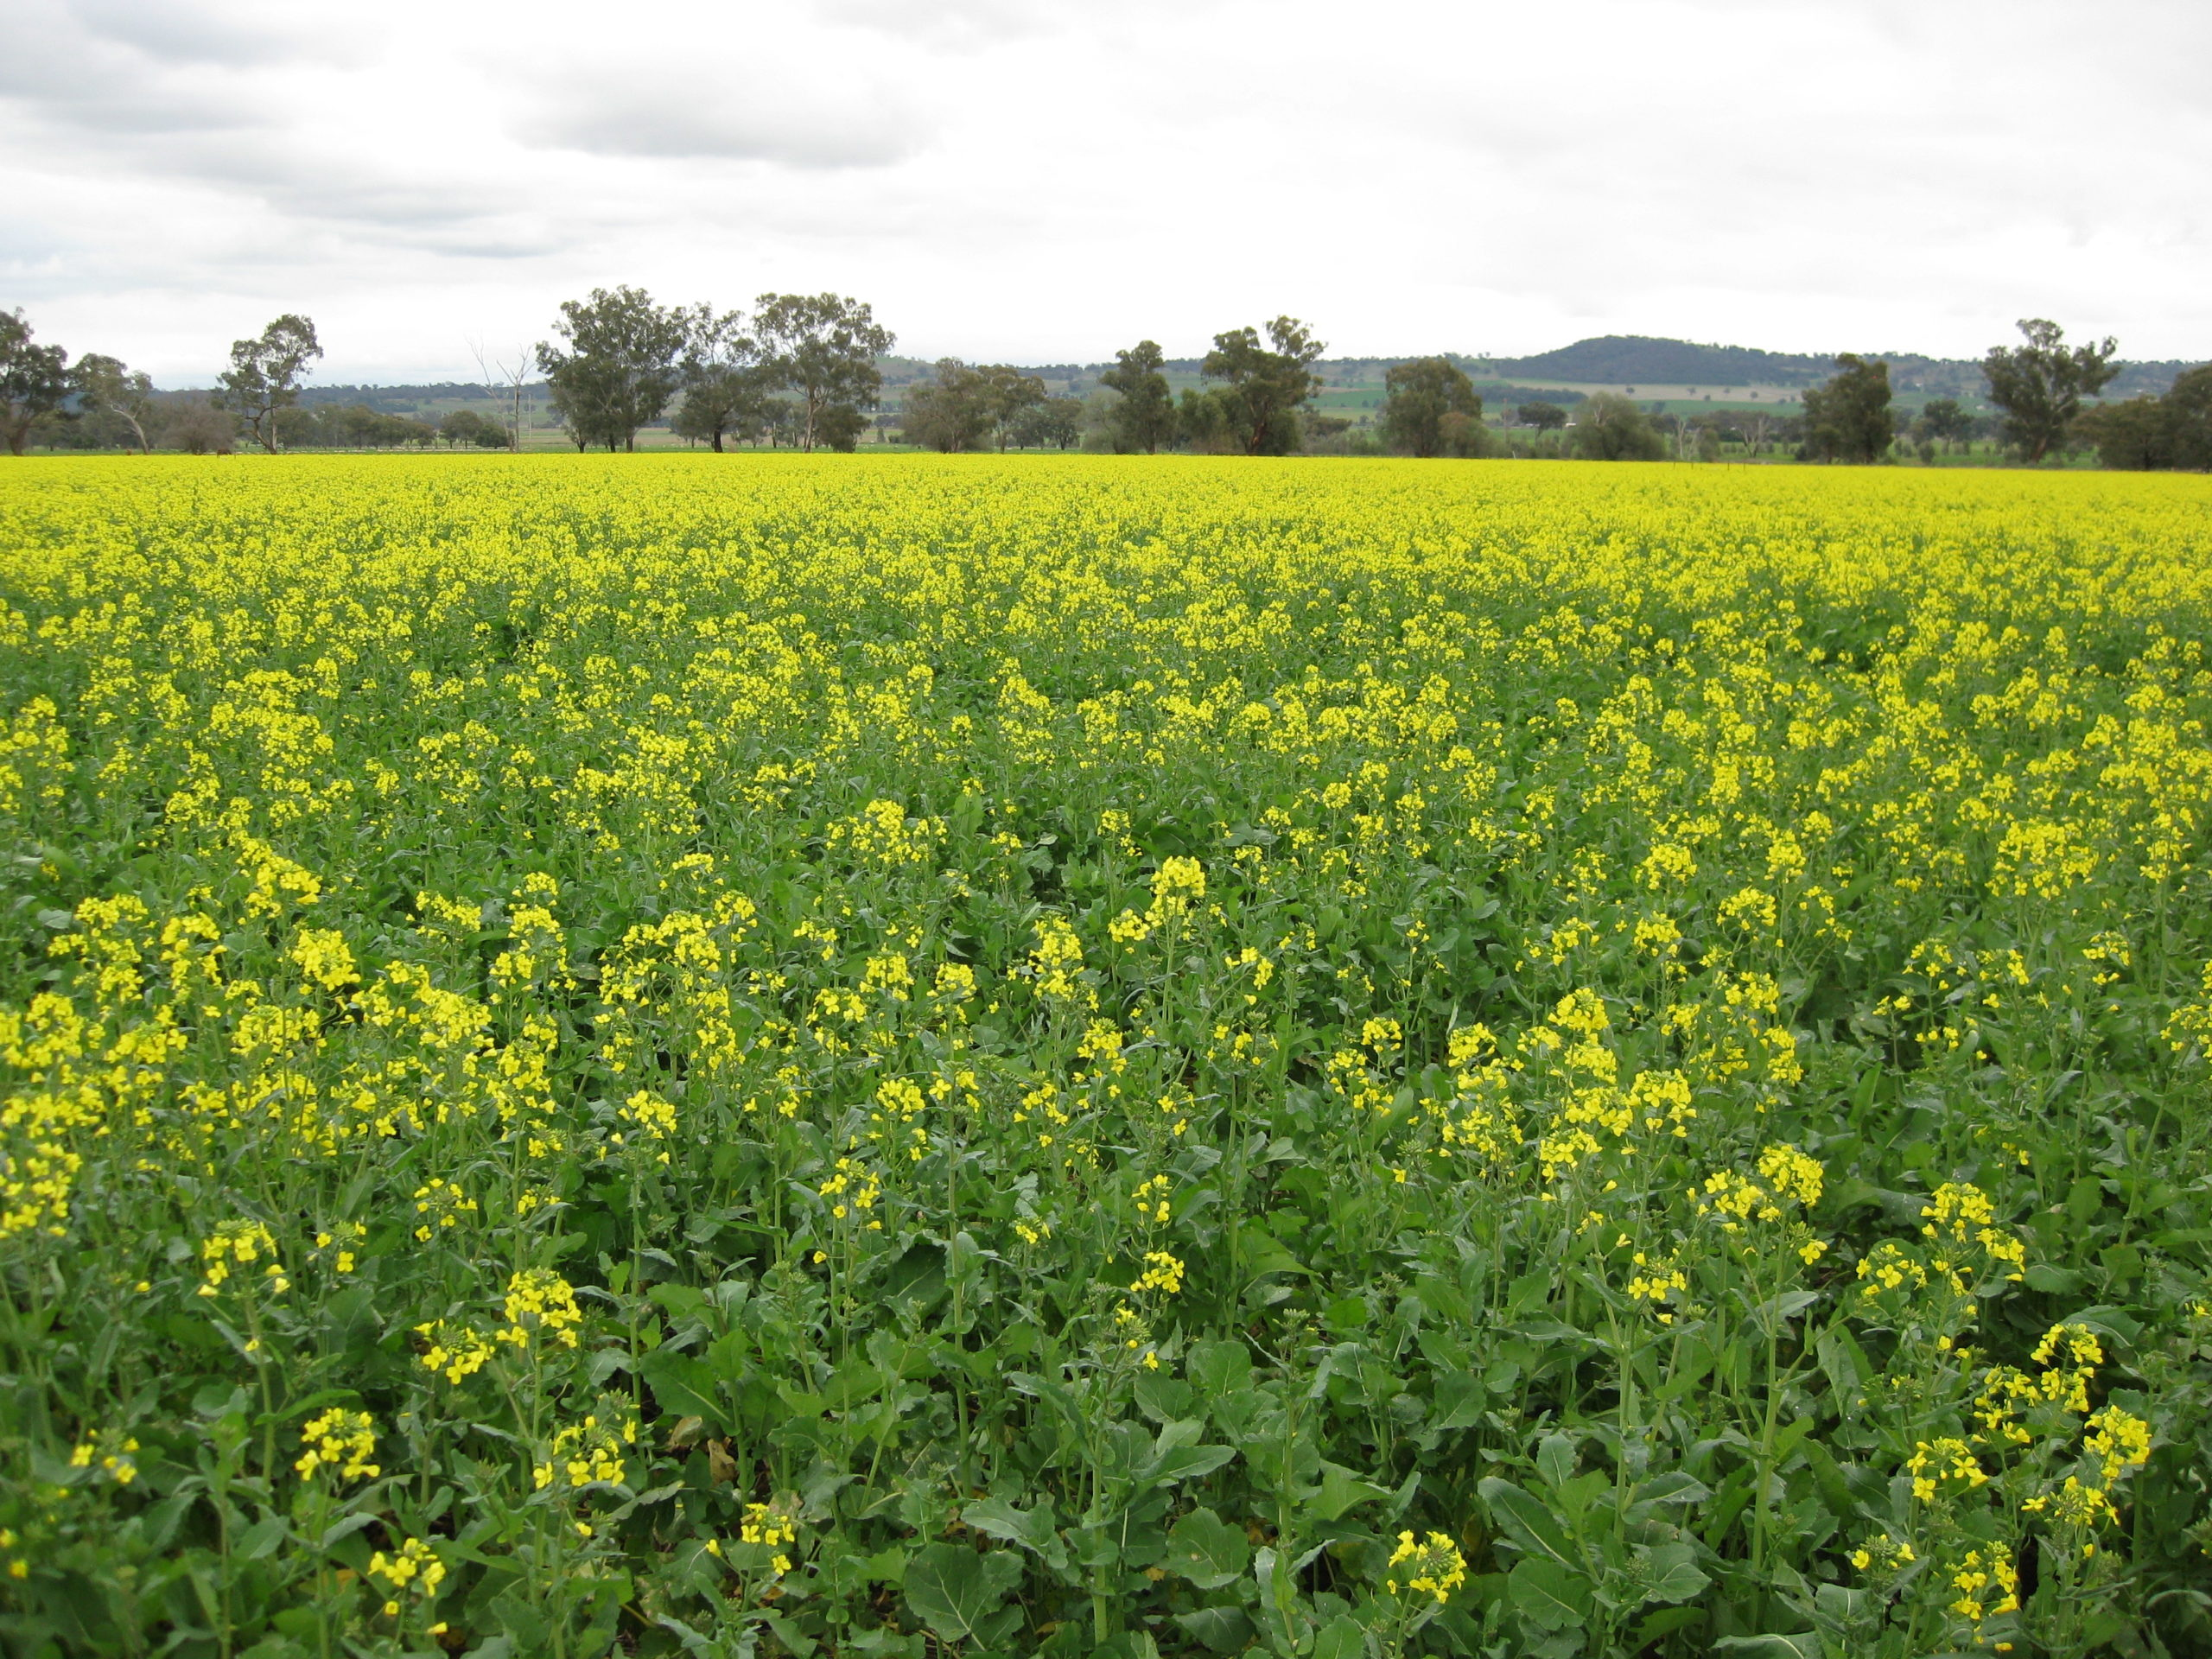 A strongly competitive canola crop can suppress weed biomass at flowering by a huge 50 per cent, significantly reducing the amount of weed seed added to the seed bank.